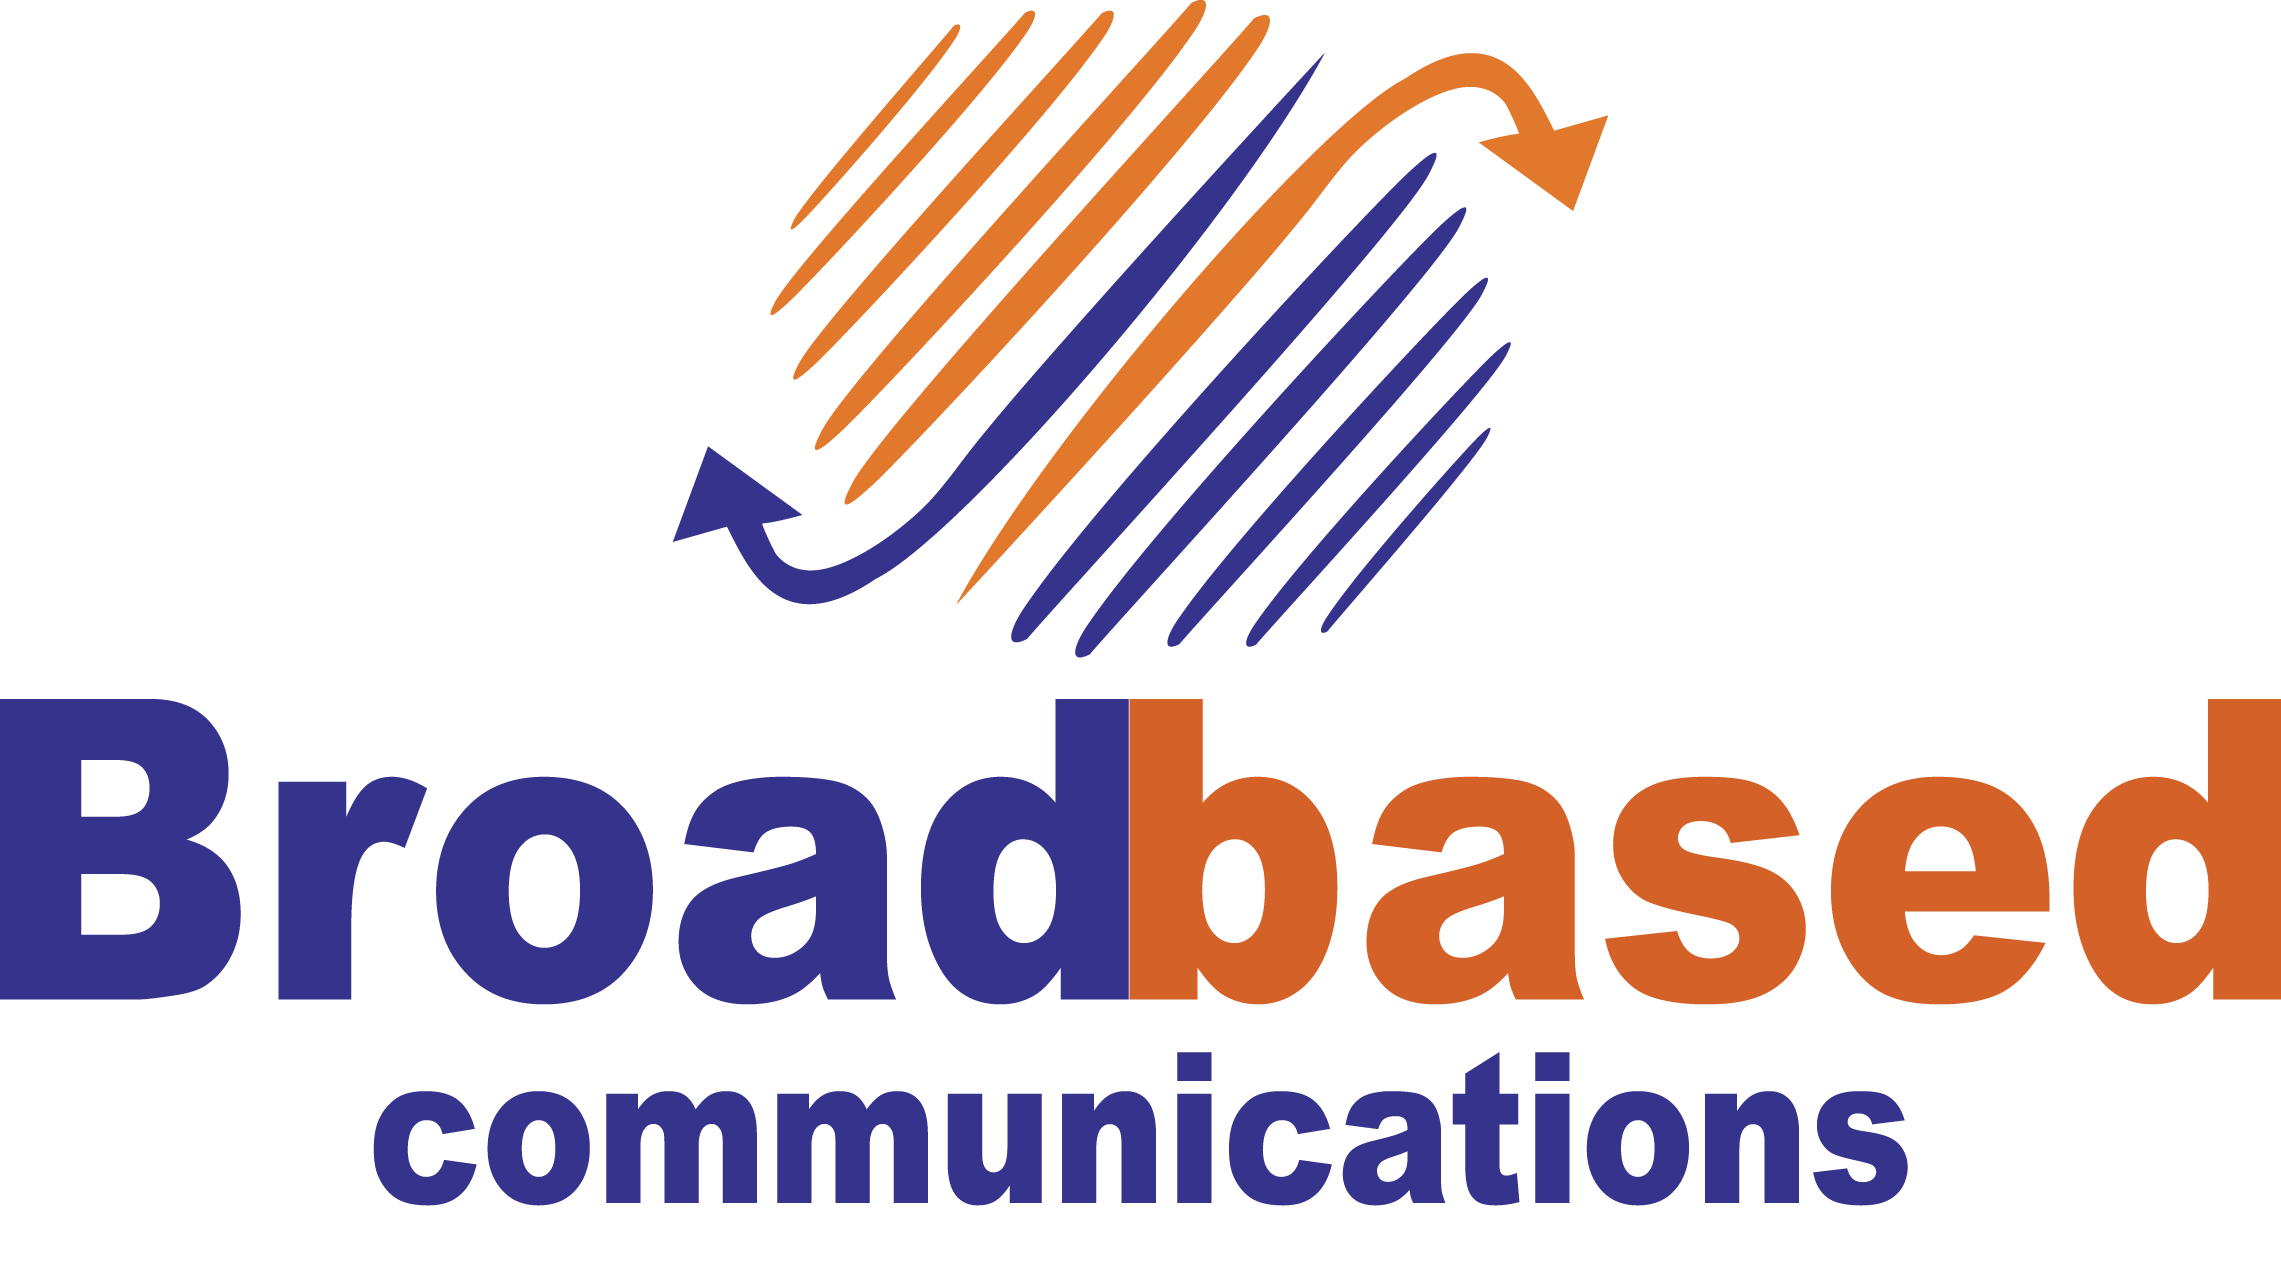 BroadBased Communications